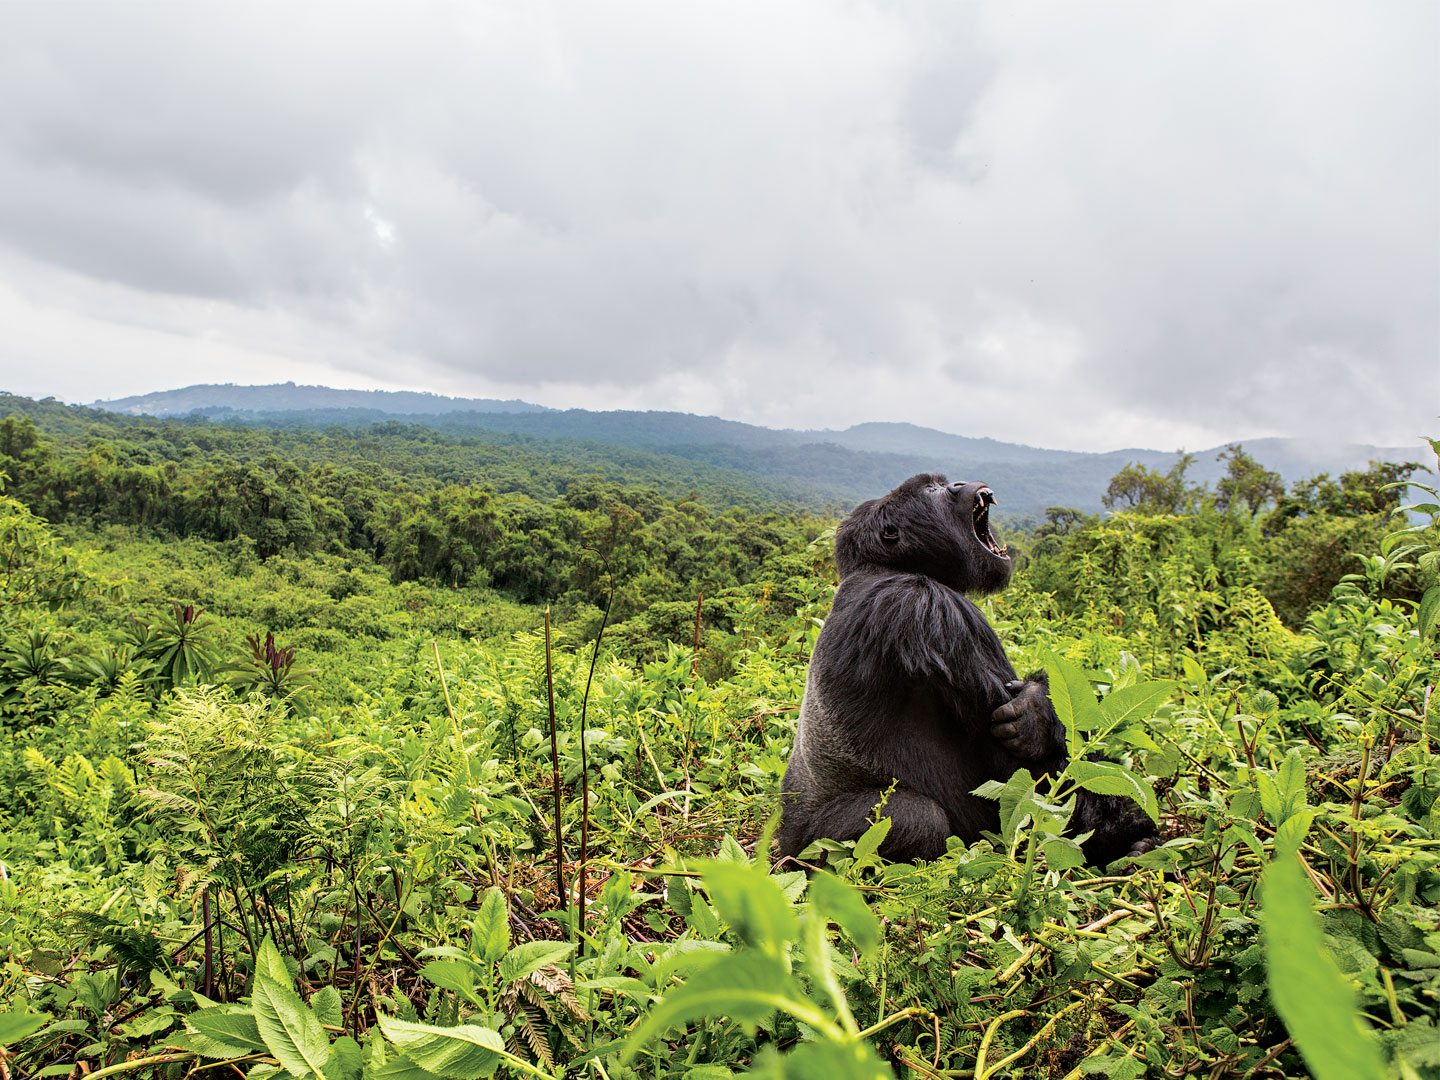 King of the rainforest, a gorilla yawns wide in Rwanda's Volcanoes National Park. Photo: Teagan Cunniffe